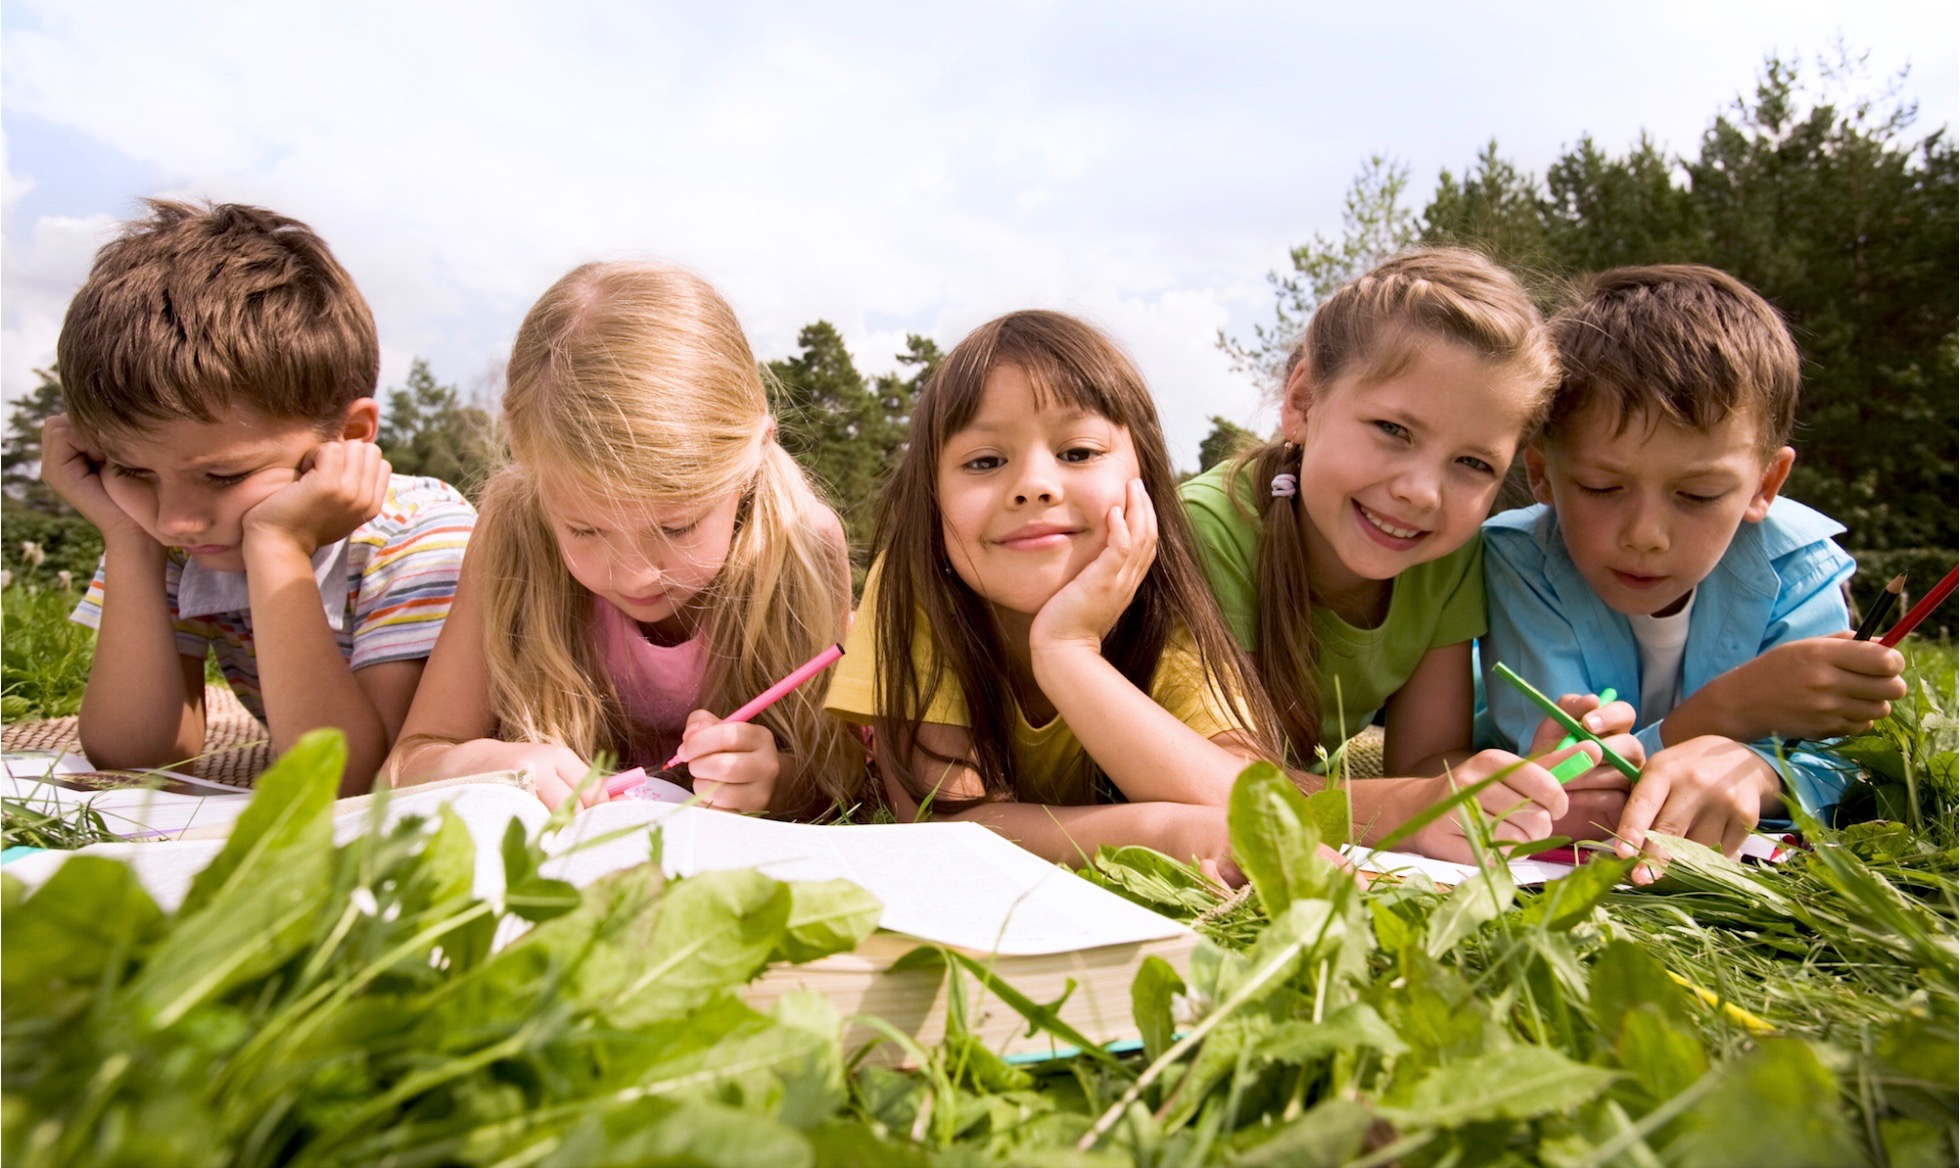 Looking for Outdoor Educational Learning Resources?